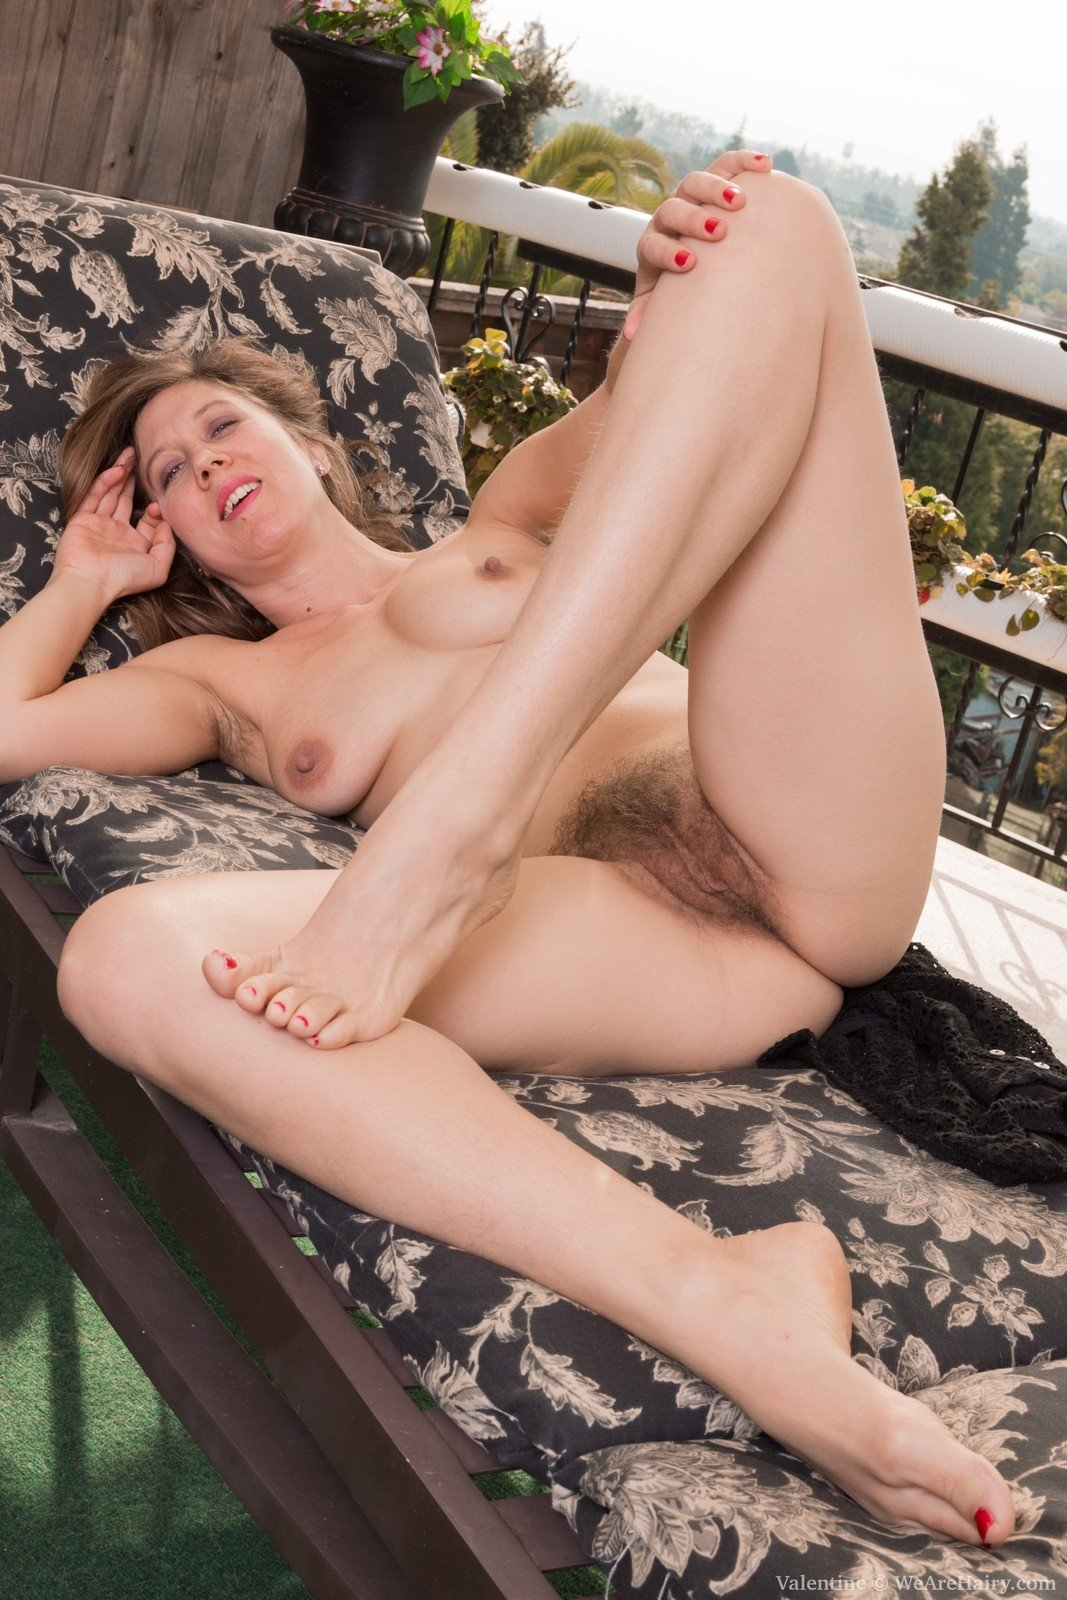 Real amateur wife sharing videos #1